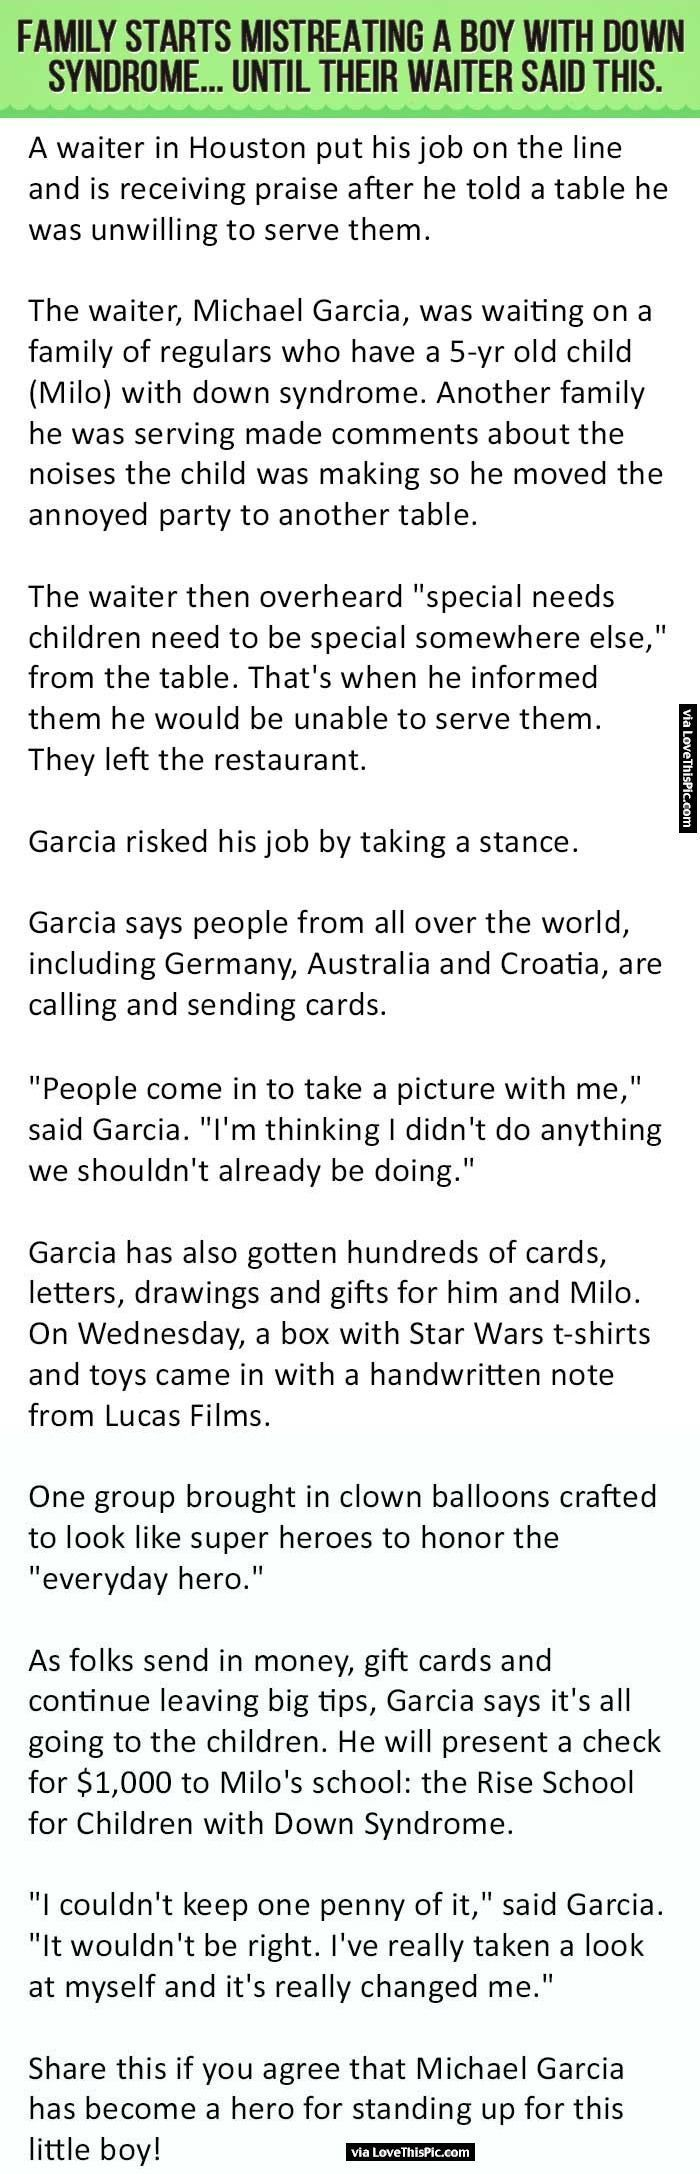 Family Starts Mistreating A Boy With Down Syndrome Until Their Waiter Said This. people amazing story interesting facts stories good people